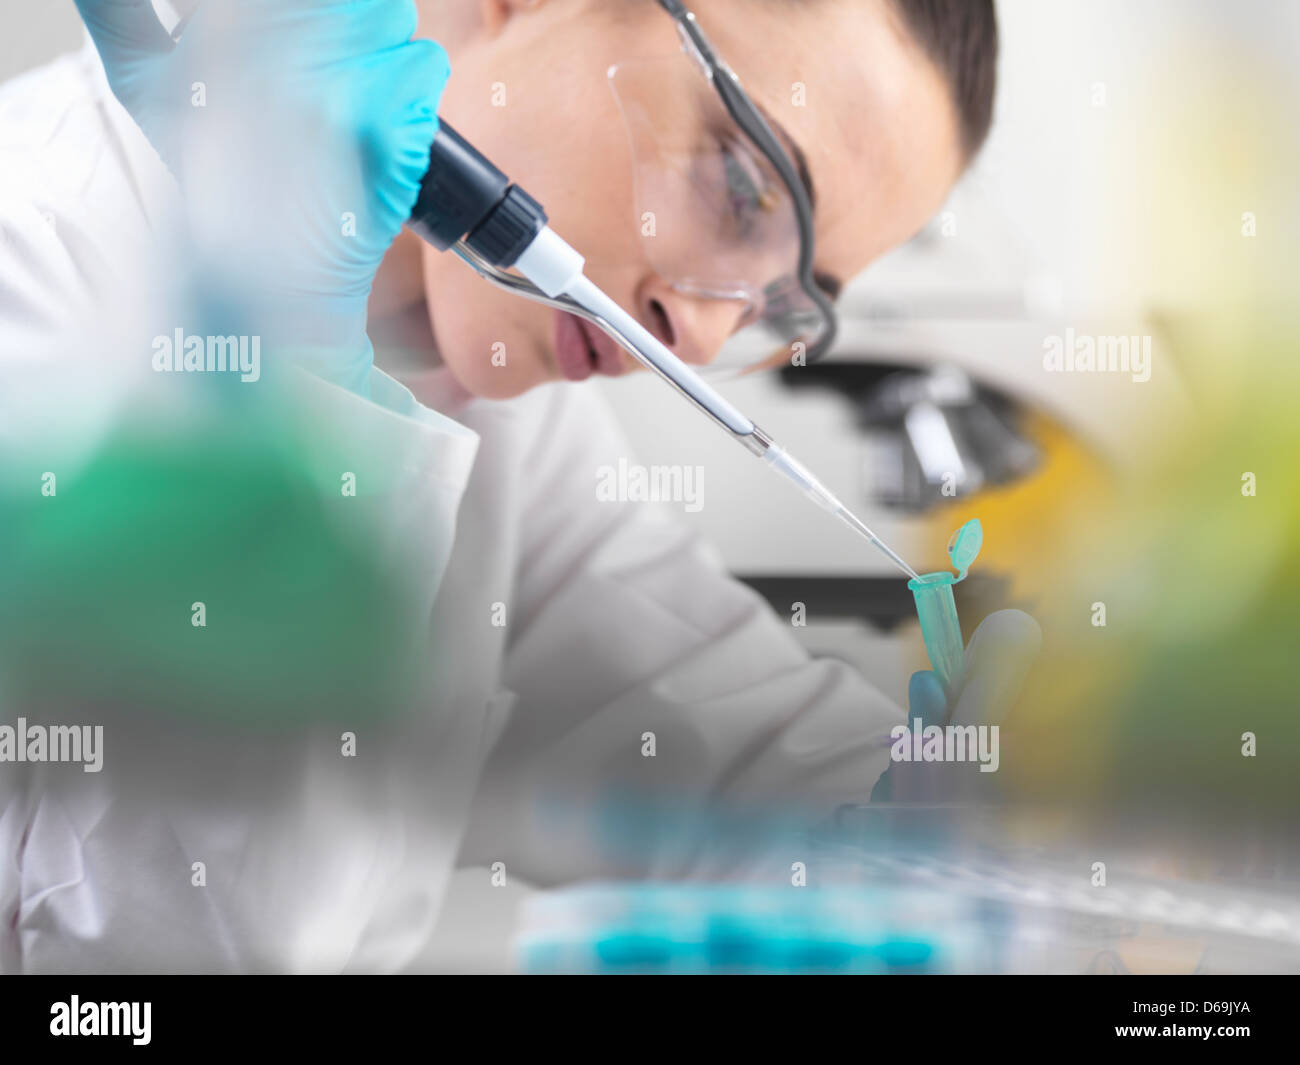 Scientist pipetting DNA sample in tubes - Stock Image